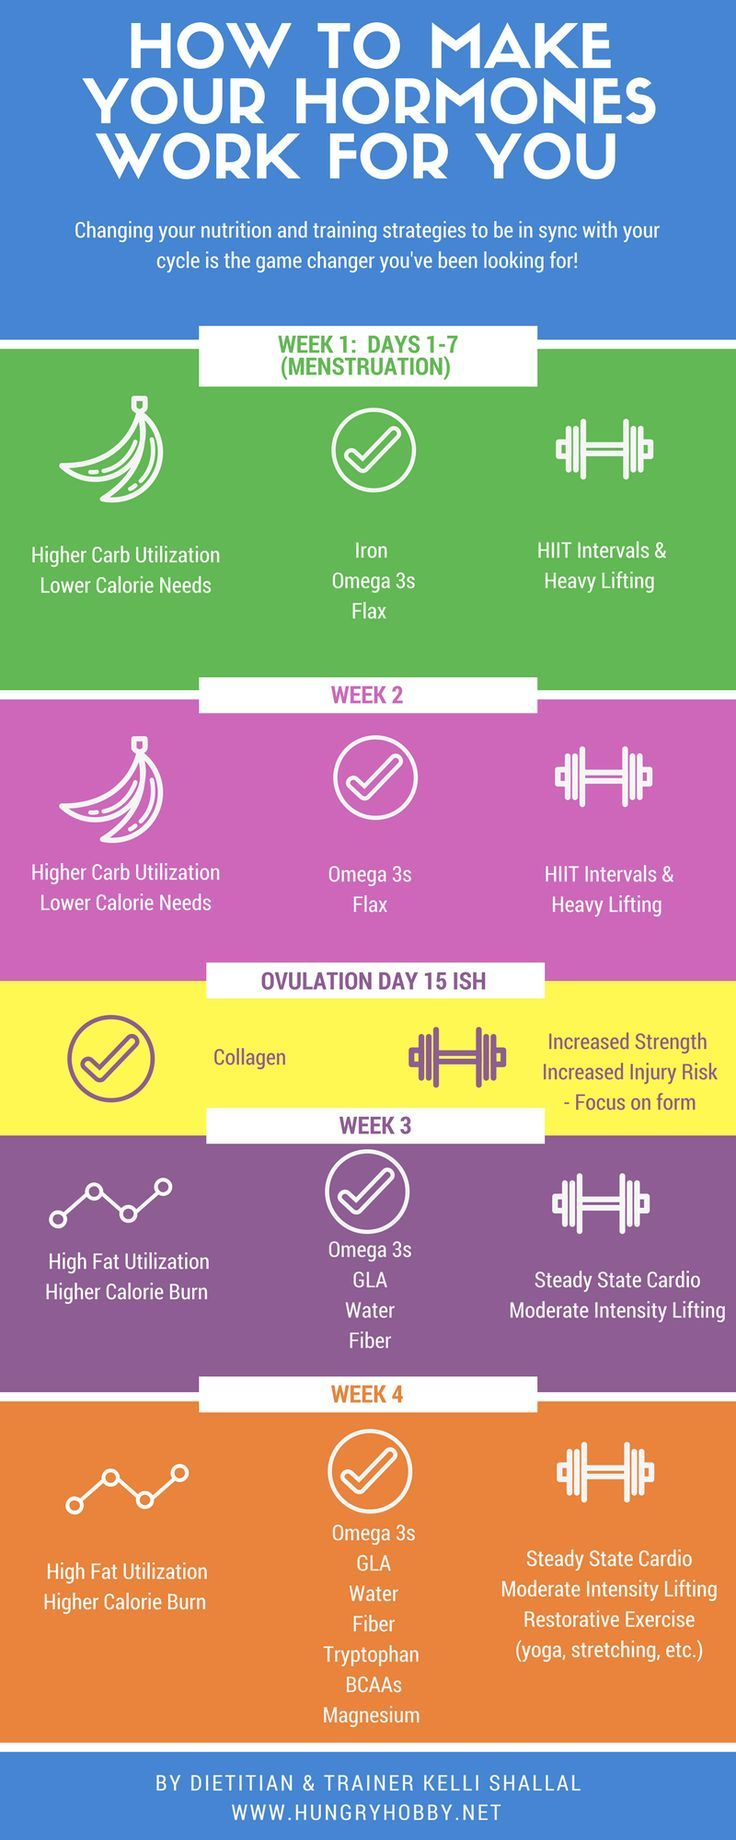 How to use your menstrual cycle stages to make your hormones work for you to optimize performance an...